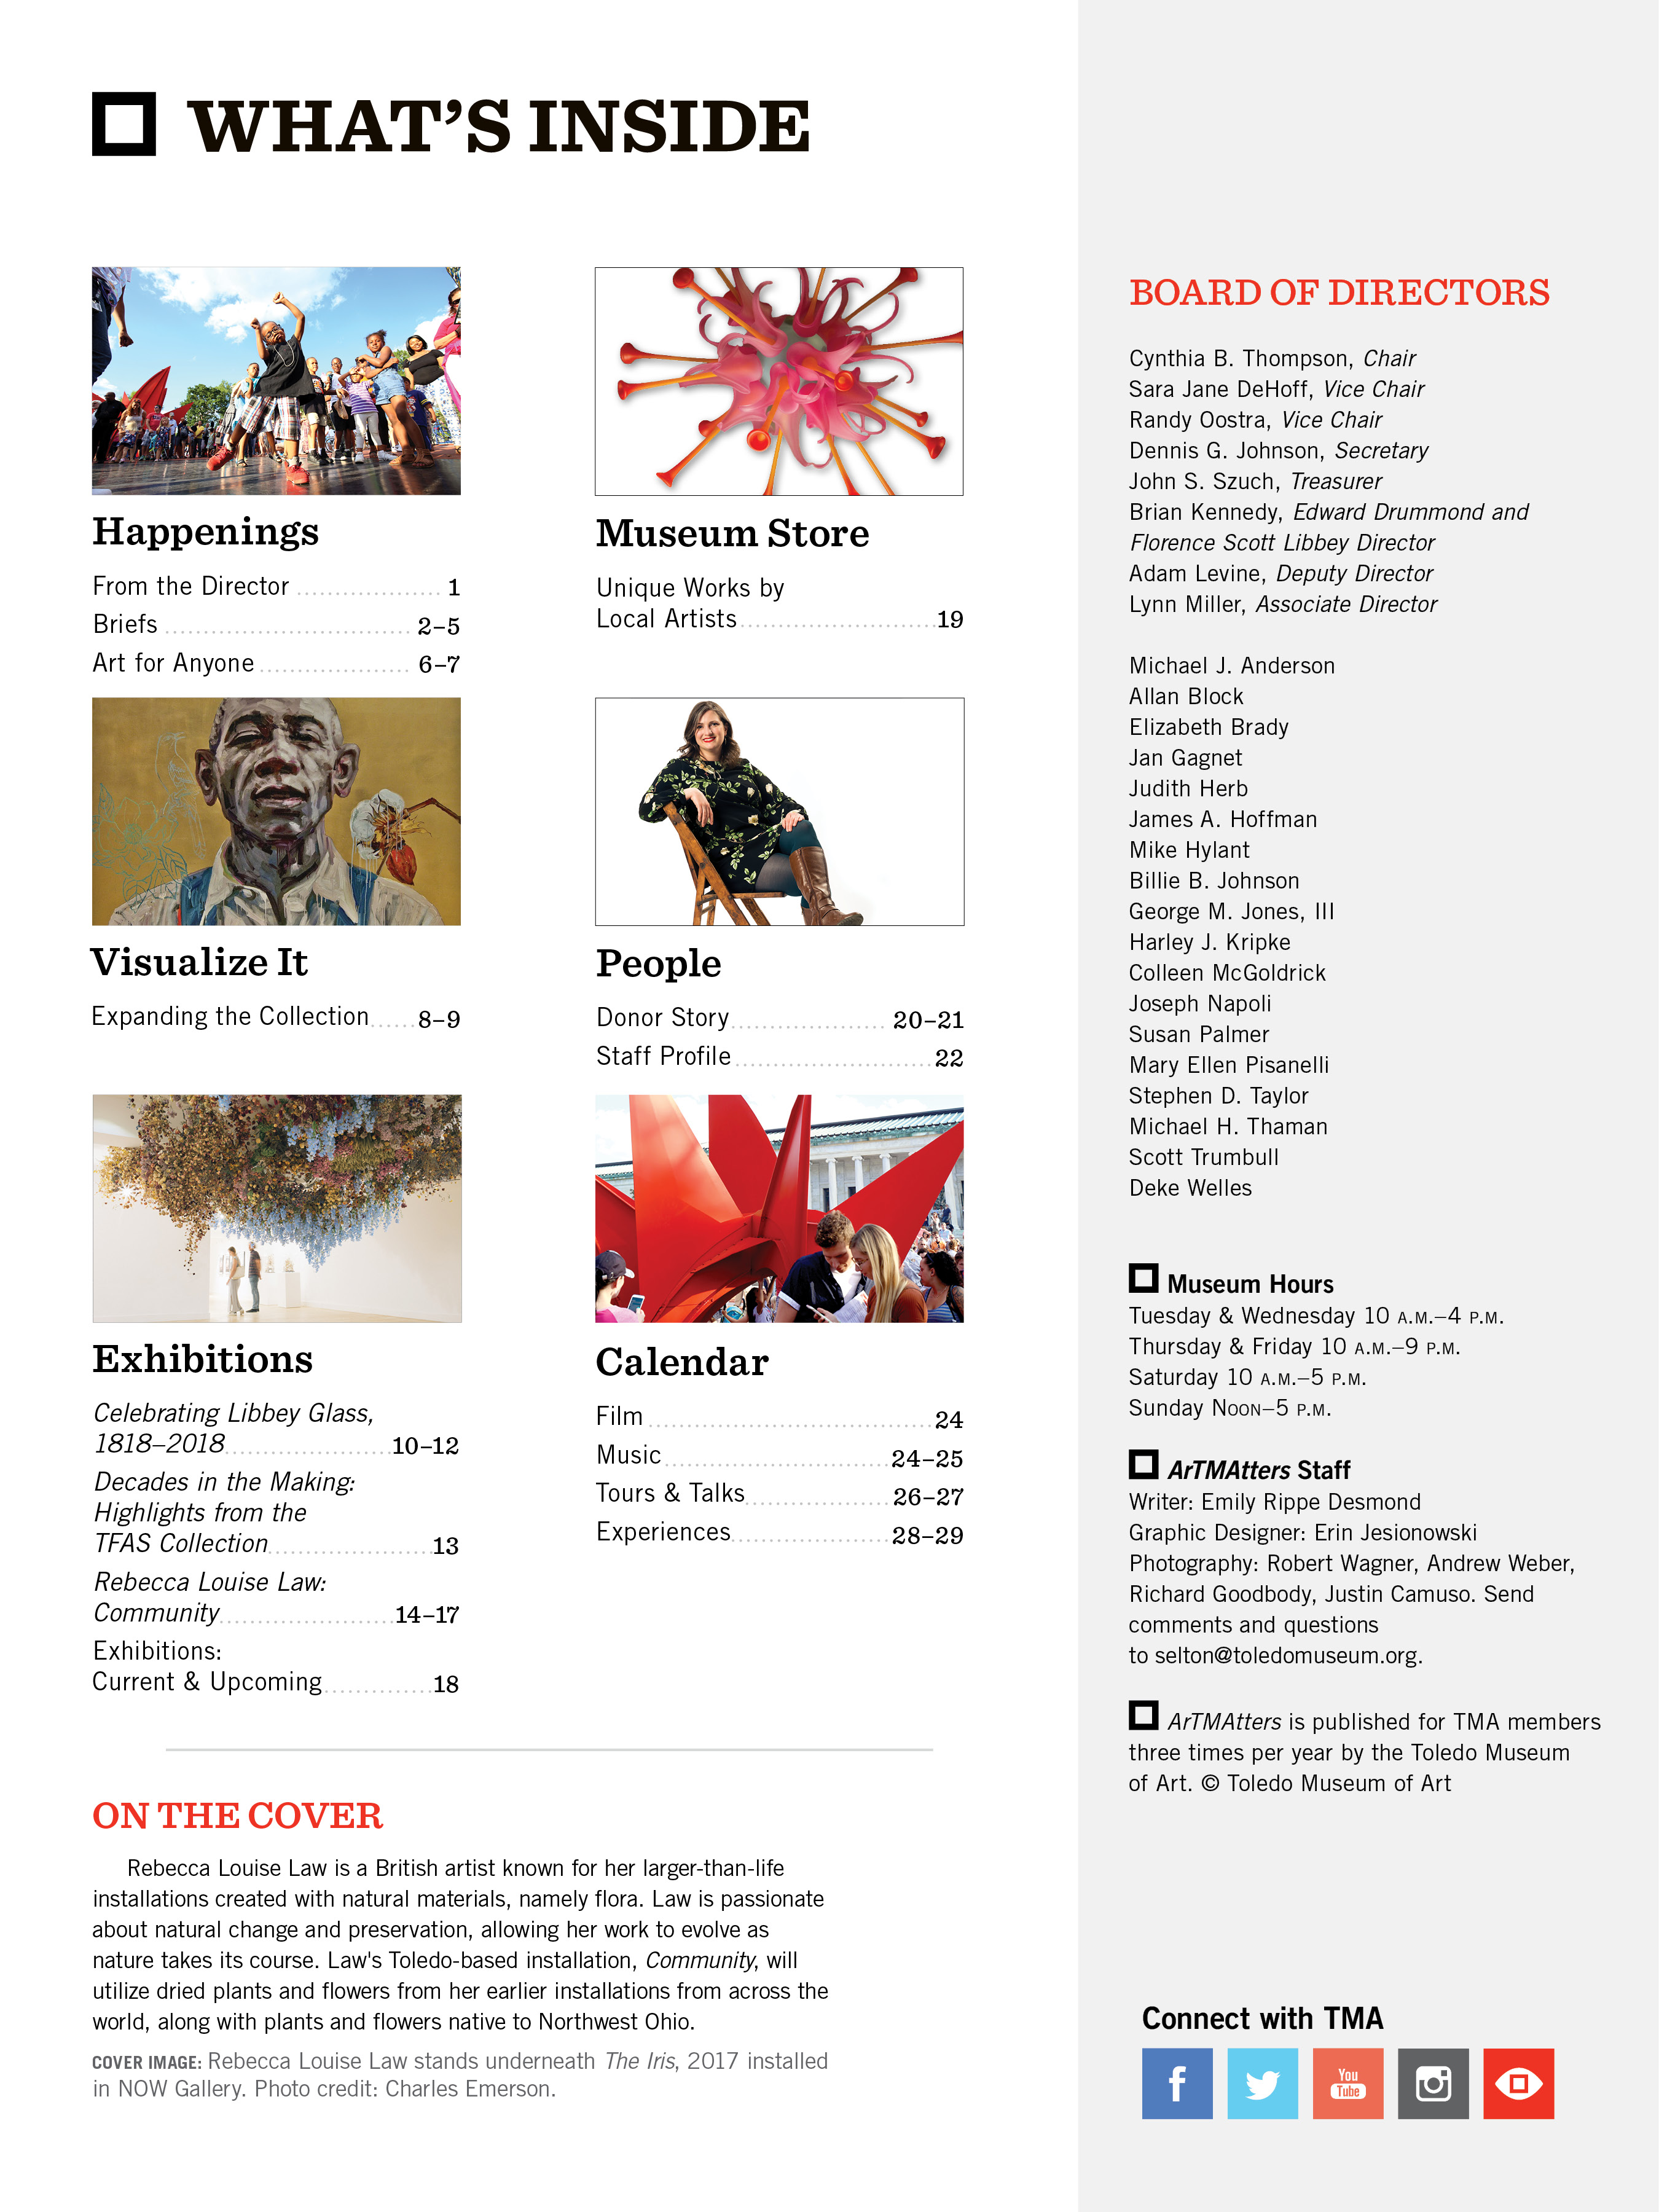 Inside cover and table of contents for the 2018 May-August Art Matters Magazine